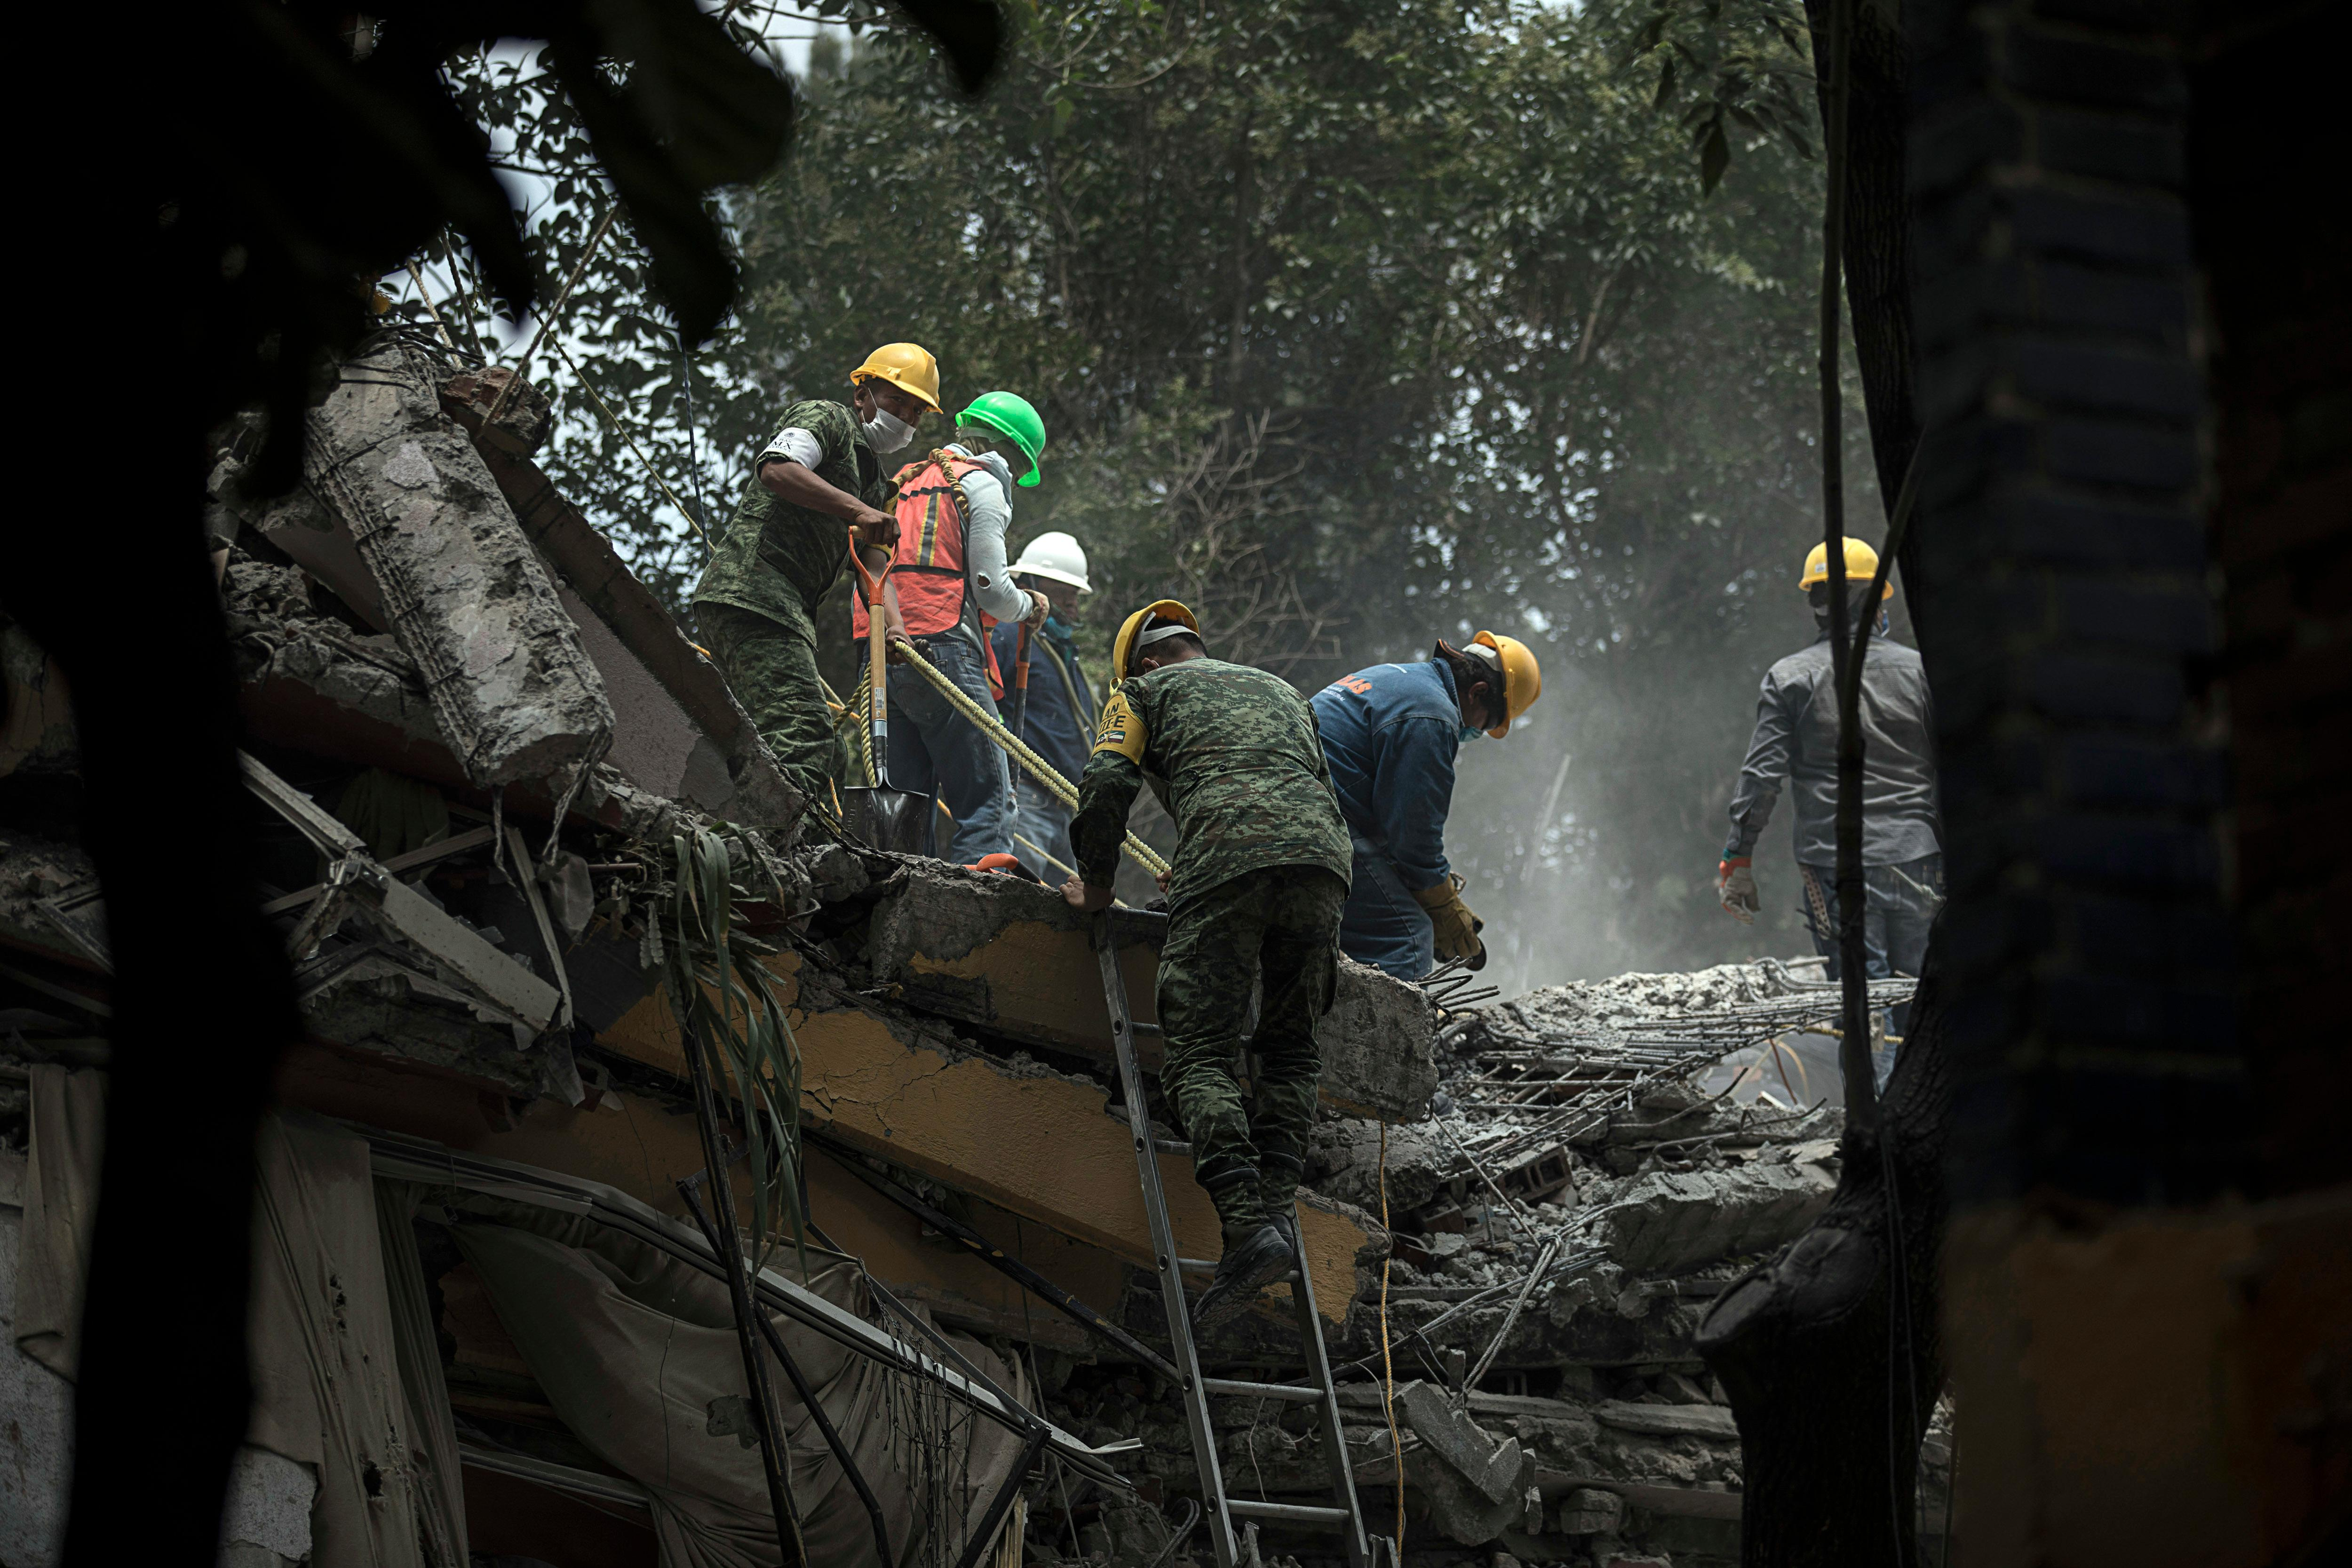 Rescue workers and volunteers search for survivors at the Unidad Habitacional Tlalpan 1-C in Mexico City, Wednesday Sept. 20, 2017. A magnitude 7.1 earthquake has stunned central Mexico, killing more than 100 people as buildings collapsed in plumes of dust. (AP Photo/Miguel Tovar)